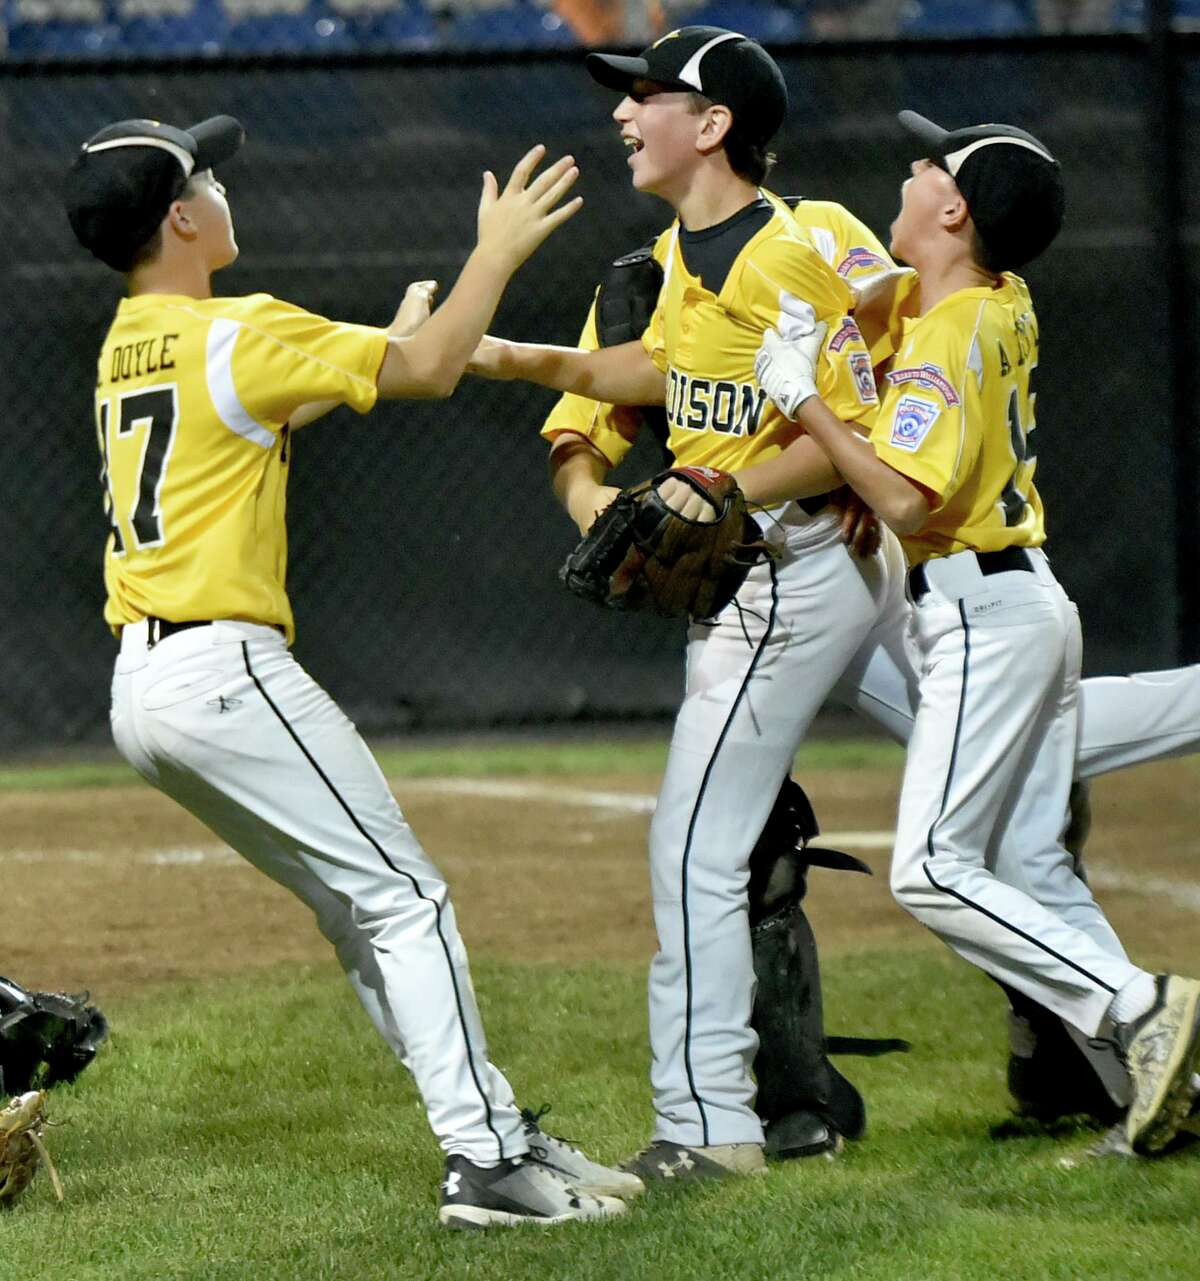 Bristol, Connecticut - Tuesday, August 6, 2019: Teammates cheer with Johnny Reh, third from left, after he pitched the last strike celebrating a Connecticut Madison Little League of Madison, CT win over Walpole Little League of Walpole, MA Tuesday at the Giamatti Little League Center in Bristol during the 2019 Little League Baseball Eastern Regional Tournament. Madison, CT defeated Walpole, MA 4-1